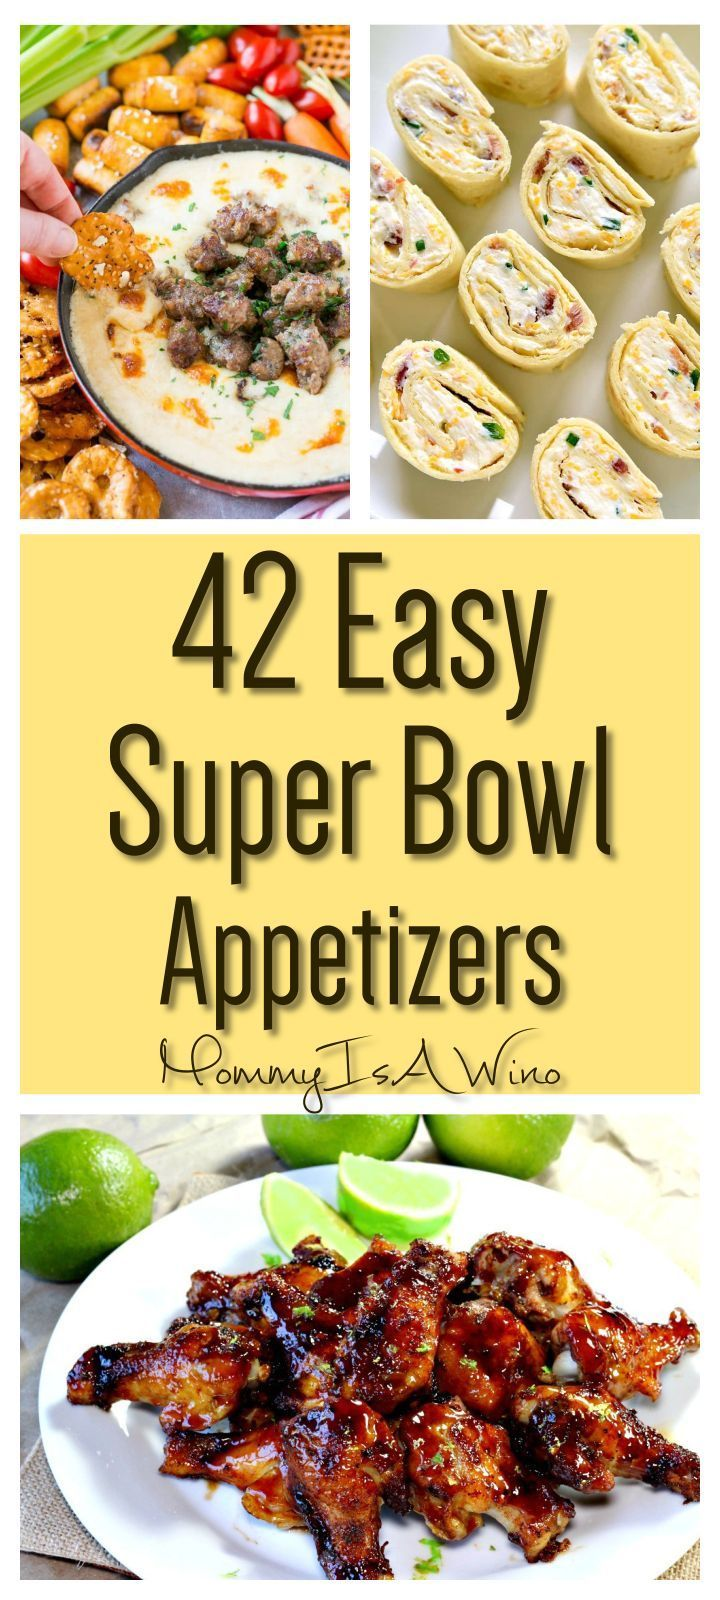 Cold Appetizers For Super Bowl Party : appetizers, super, party, Appetizer, Recipes, Super, Appetizers, Recipes,, Healthy, Superbowl, Snacks,